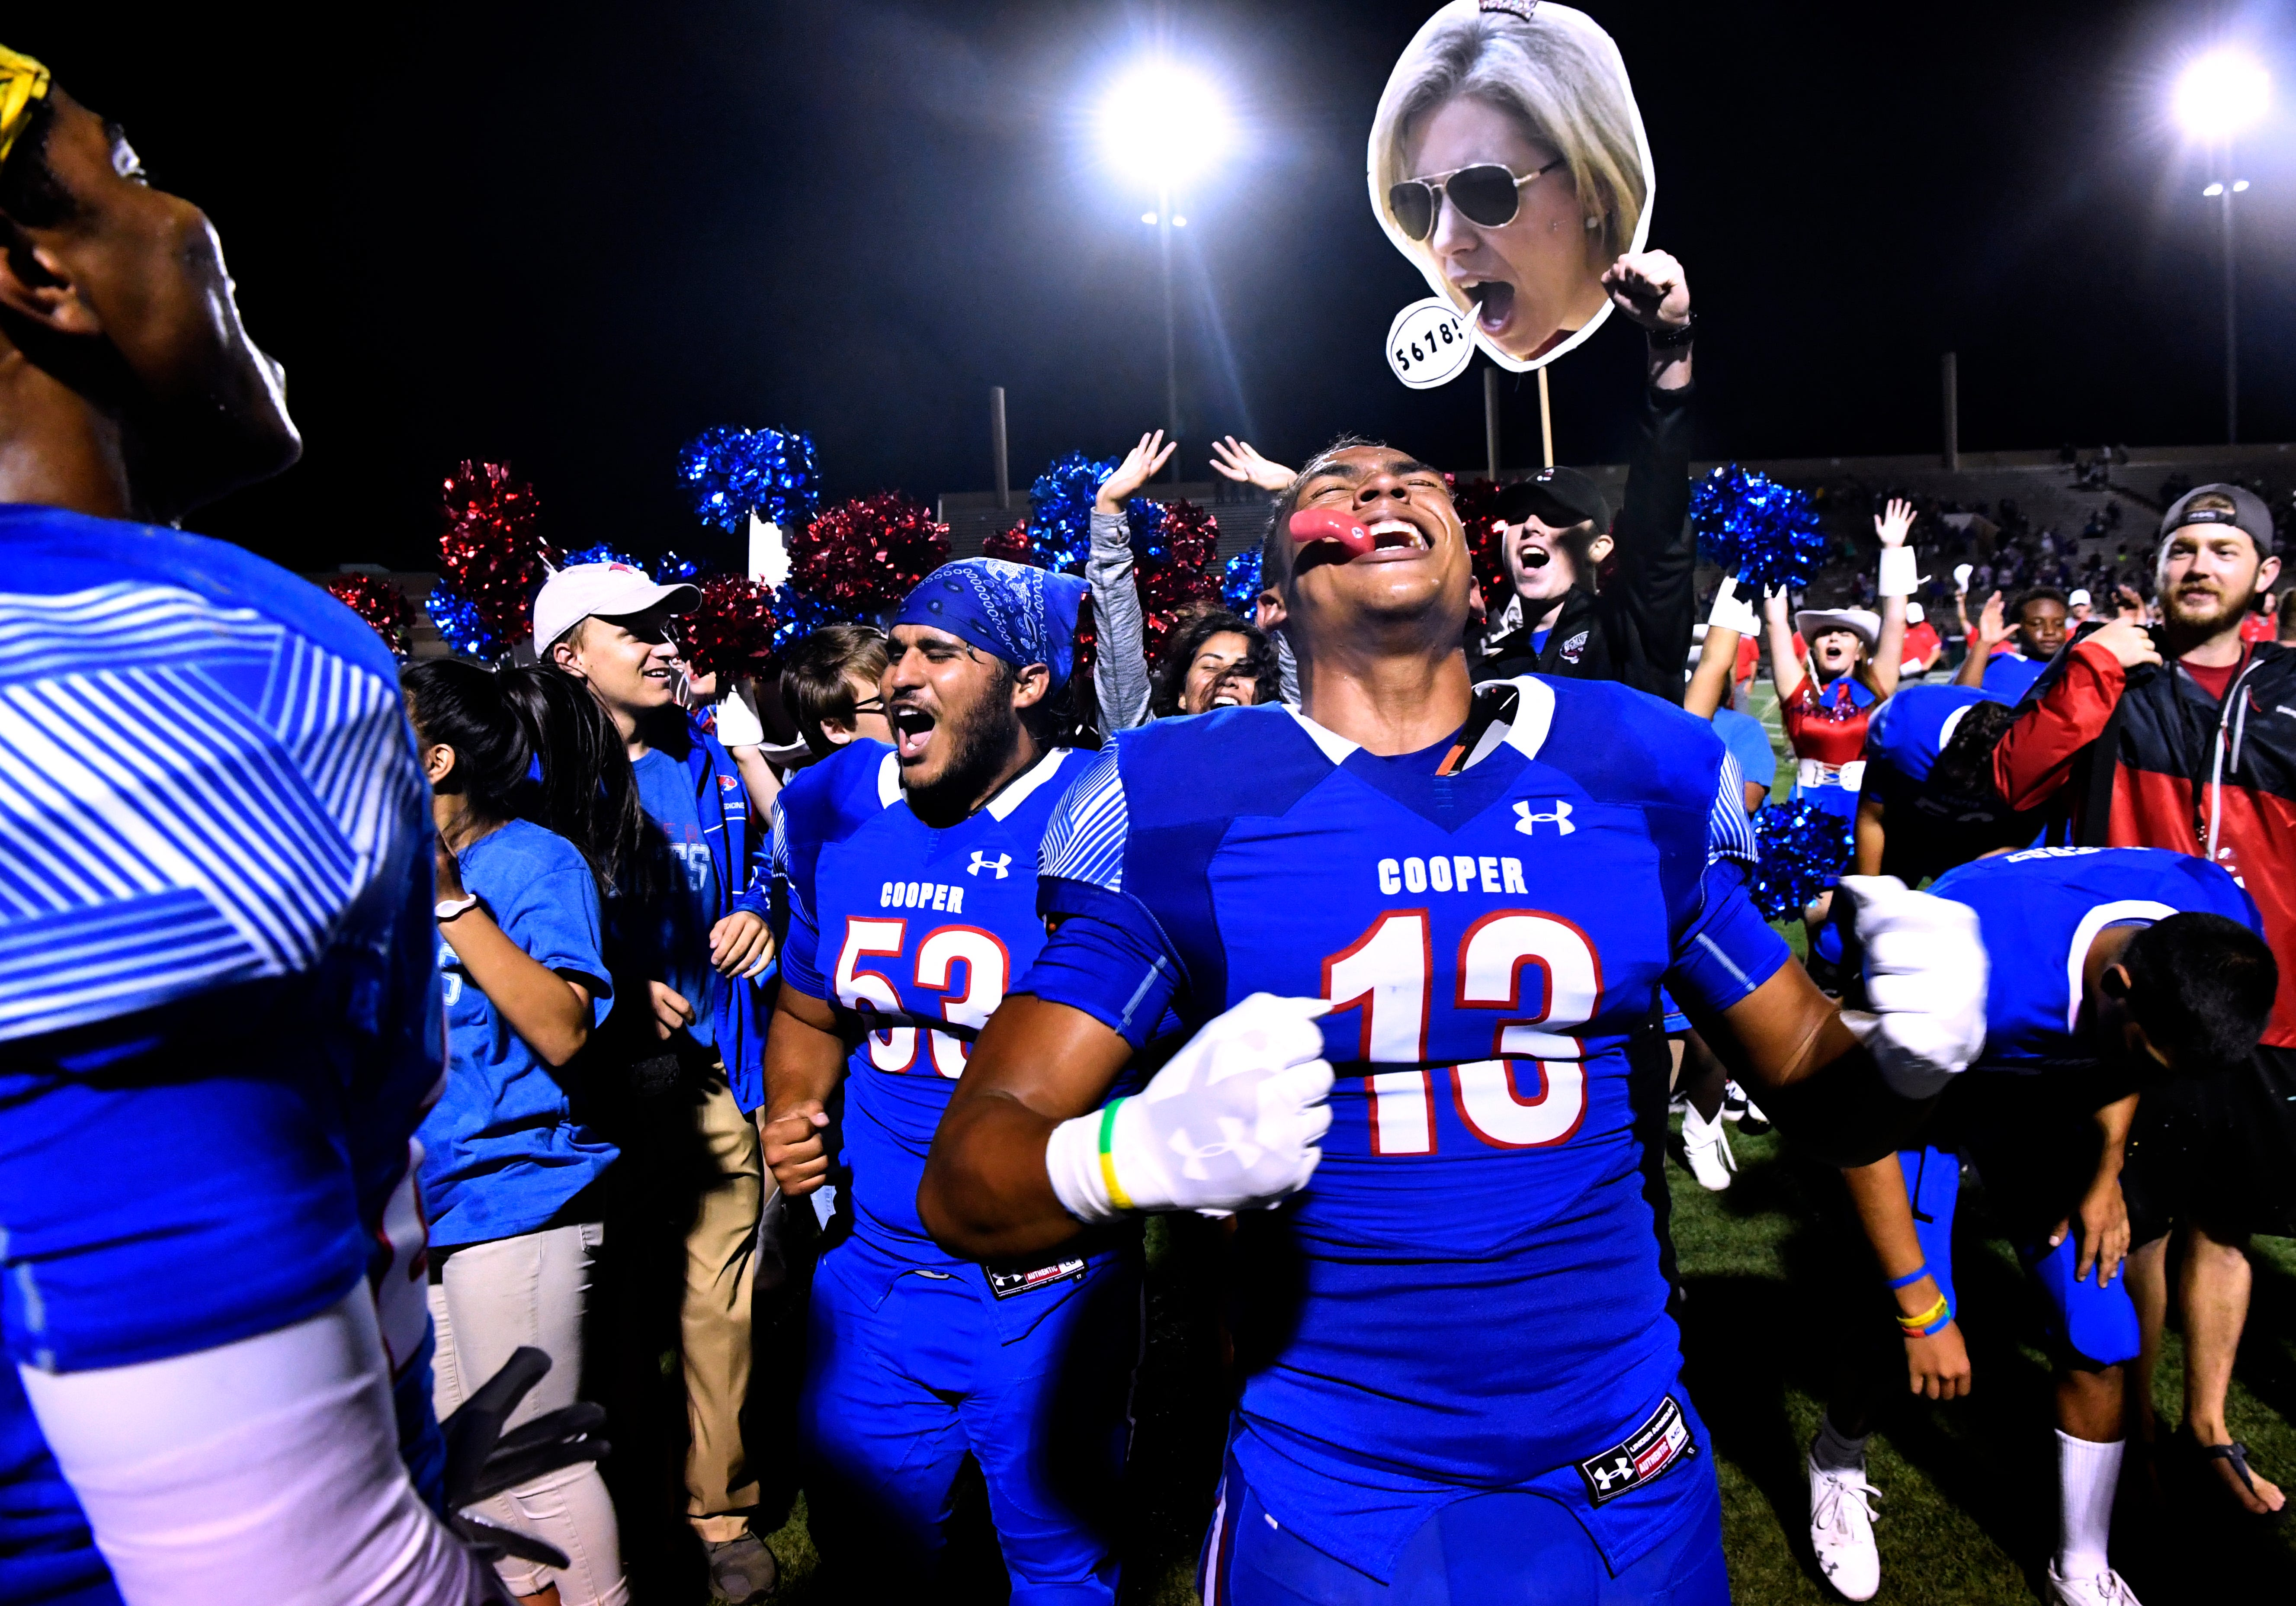 With a cutout head floating in the background,Tavian Bonds (center) celebrates Cooper High School's 48-0 win over Wylie High School Thursday Sept. 20, 2018.